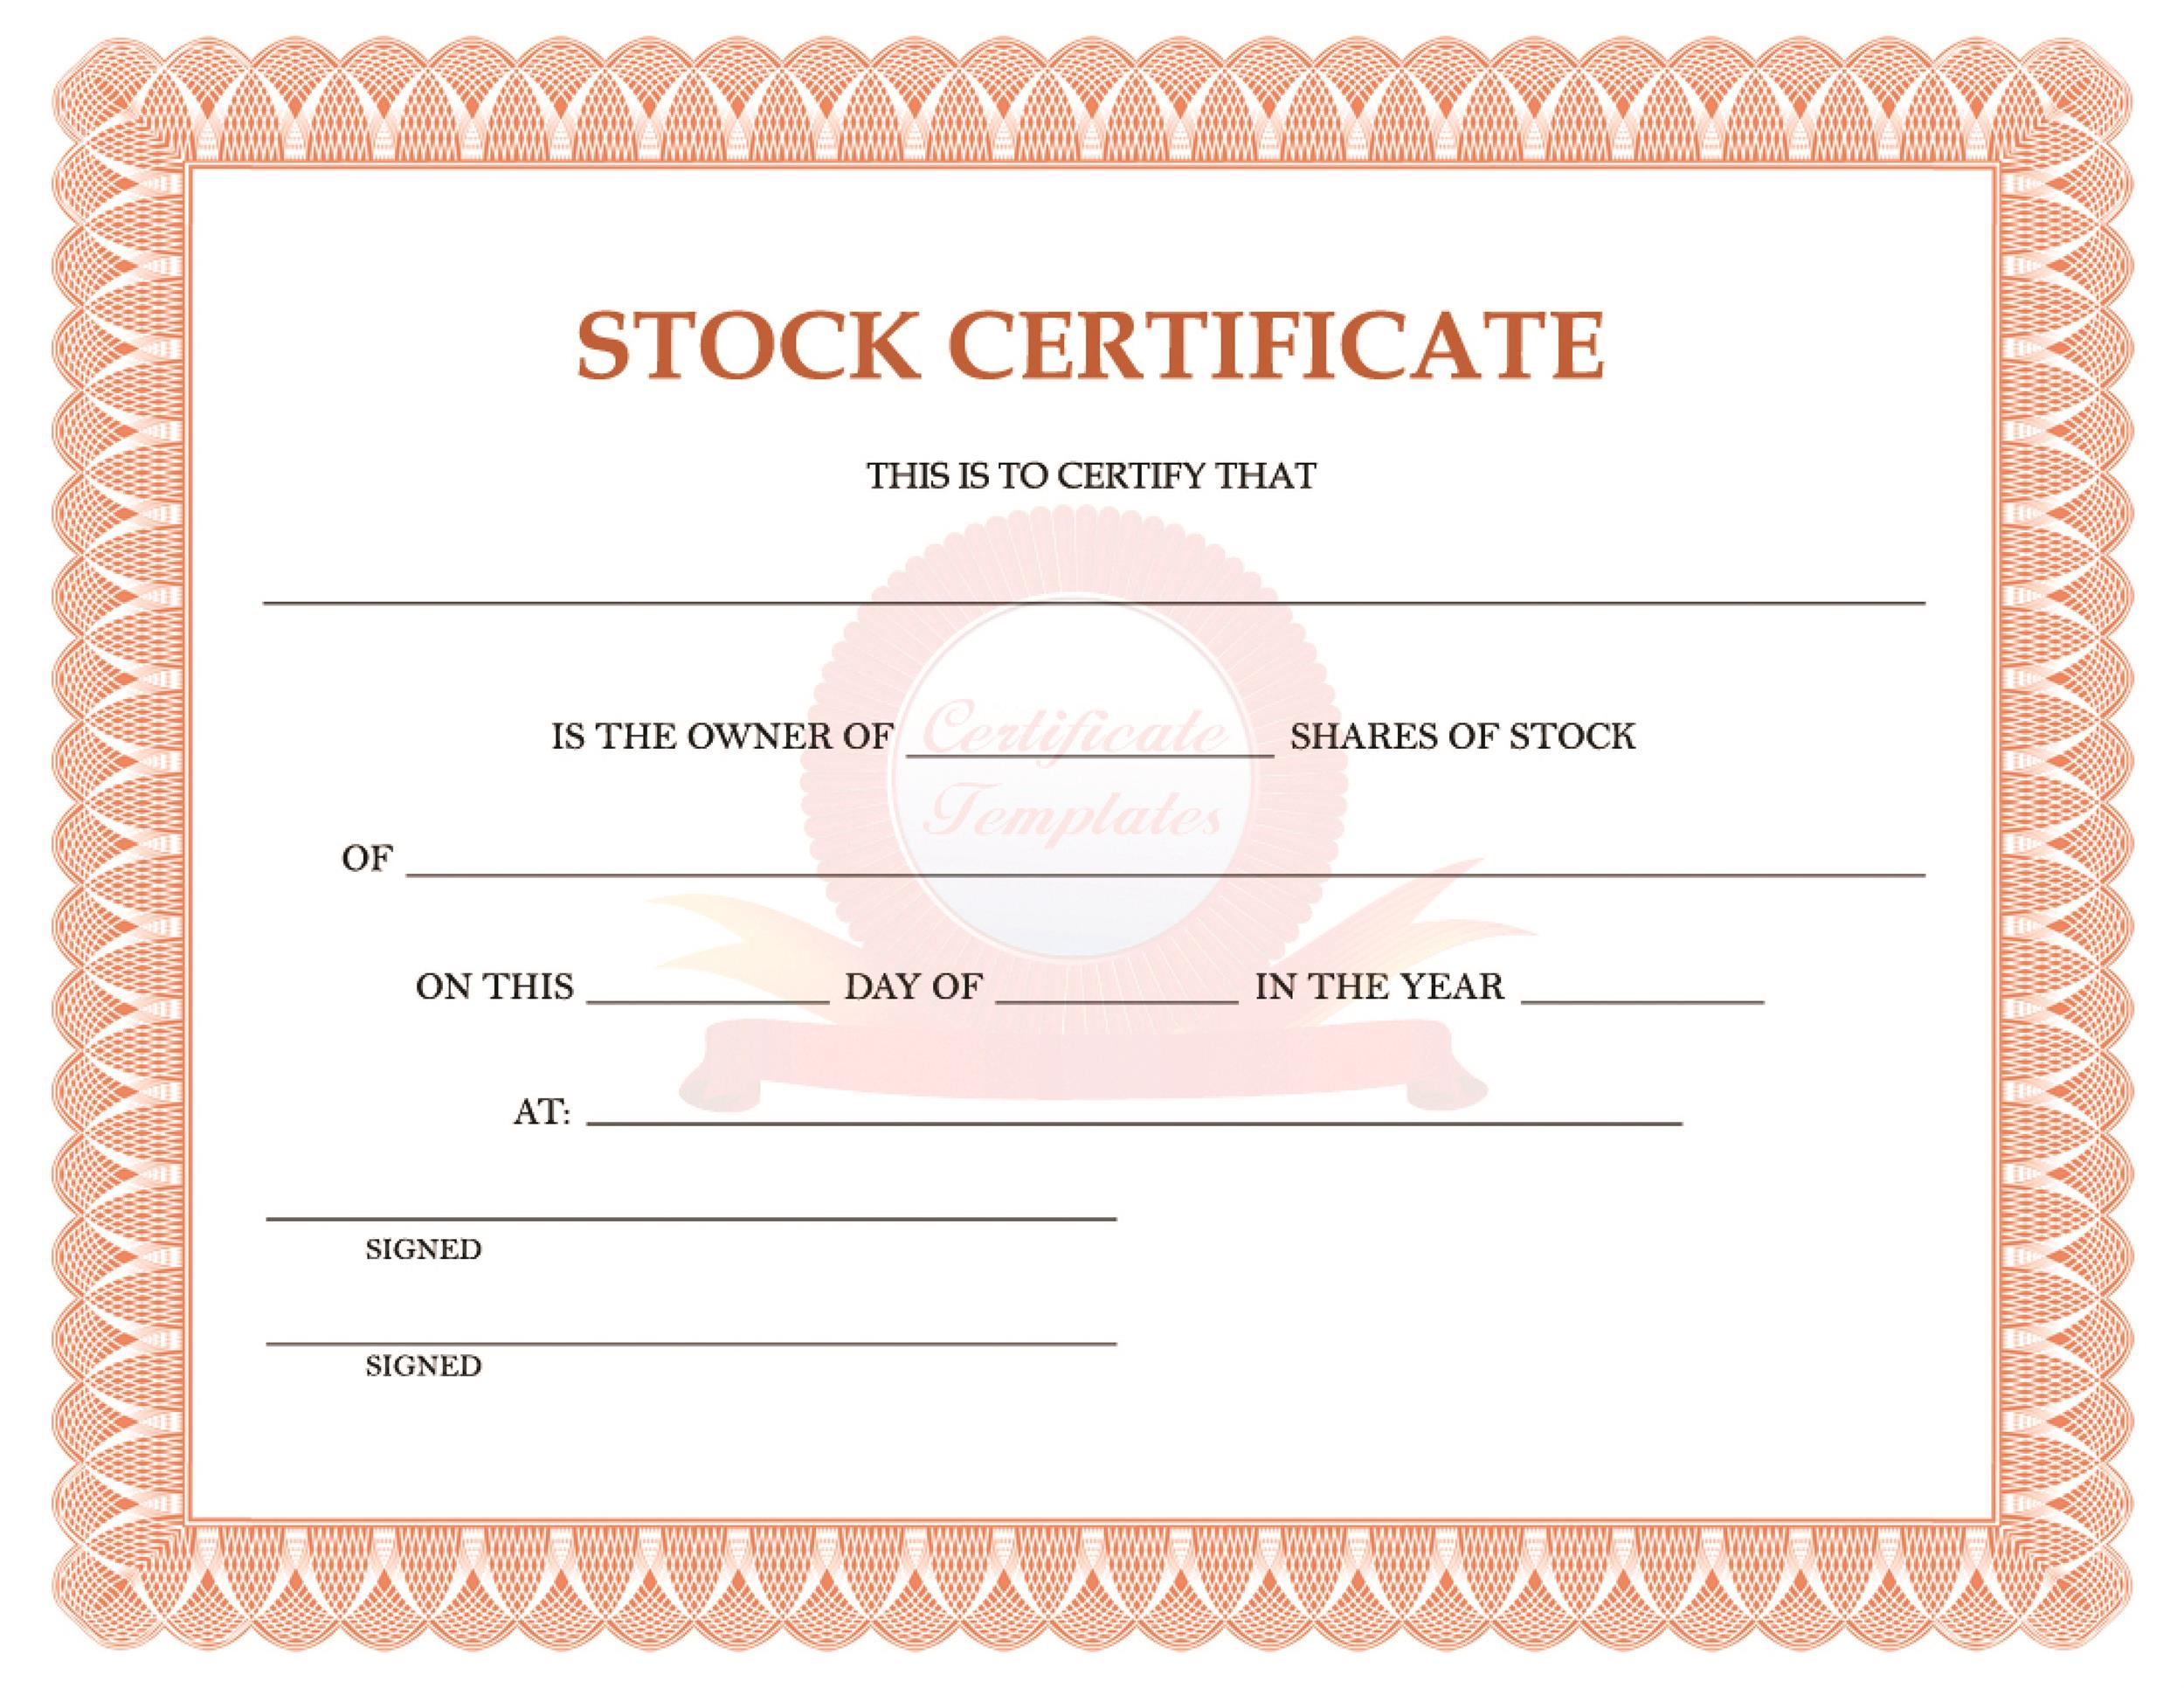 40 free stock certificate templates word pdf template lab printable stock certificate template 26 yelopaper Gallery